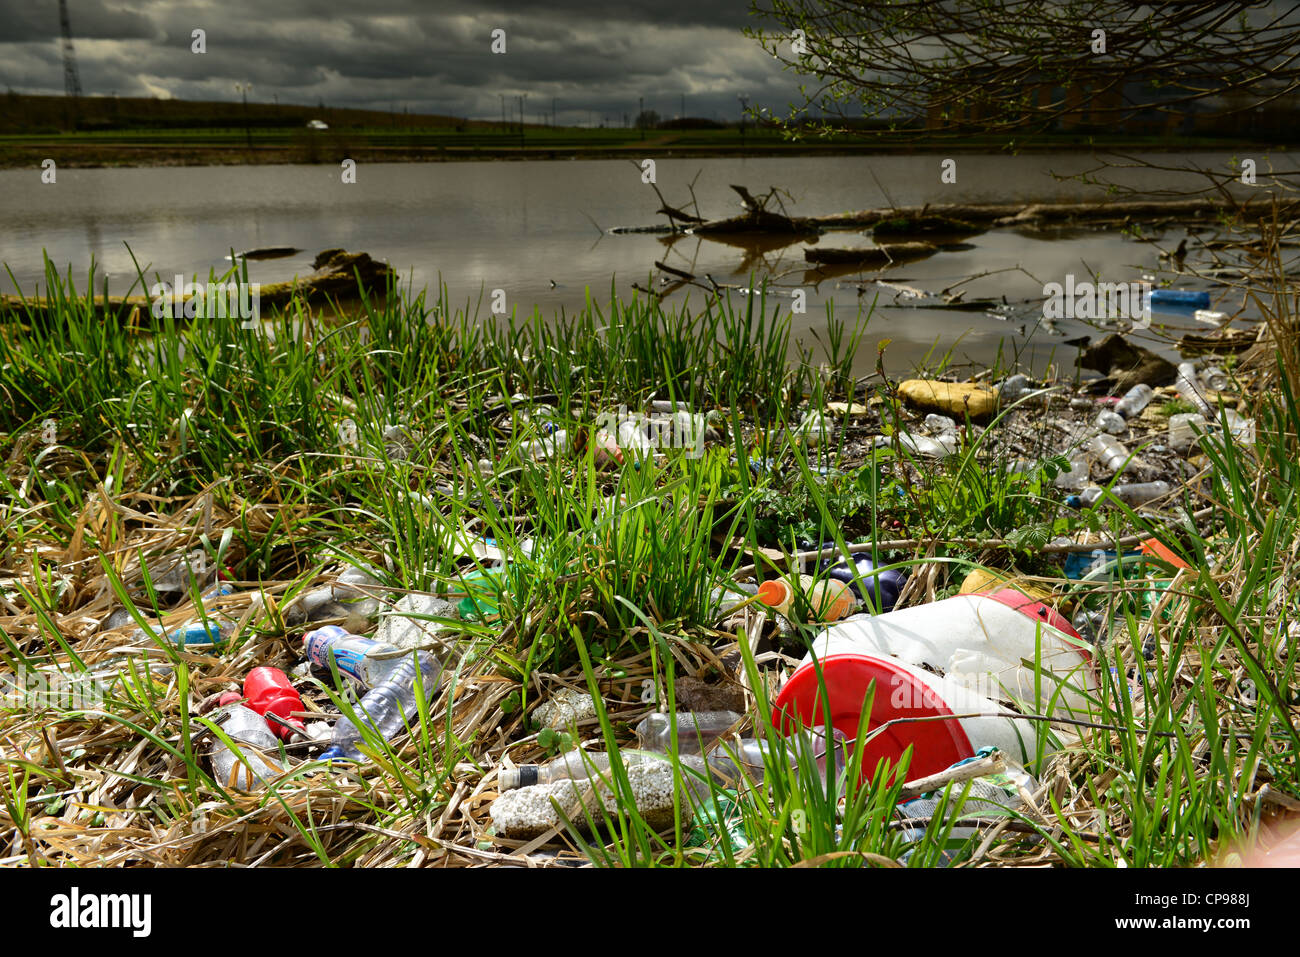 waste plastic products on shore - Stock Image